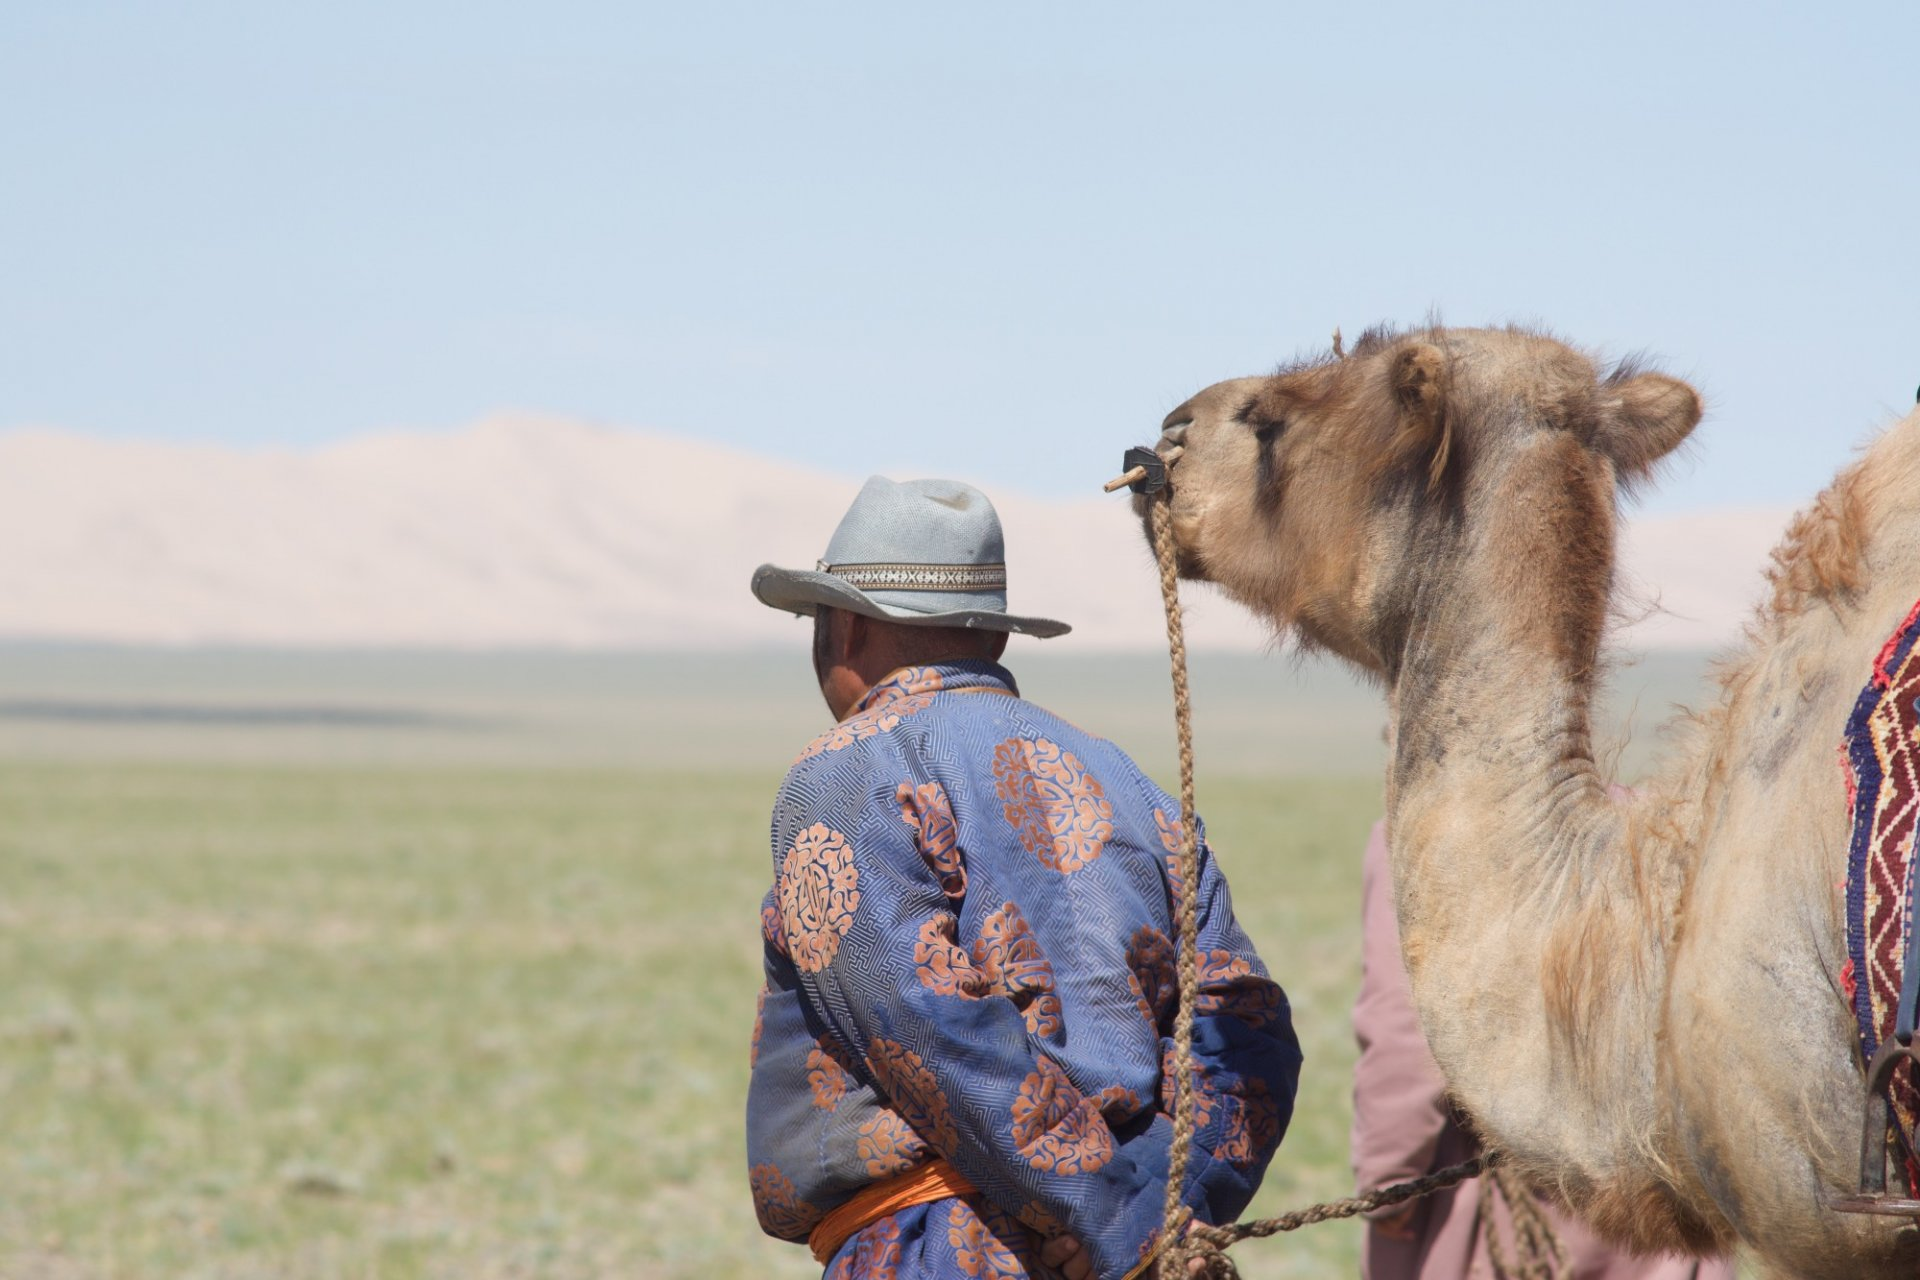 THE CAMELS AND THE HERDERS